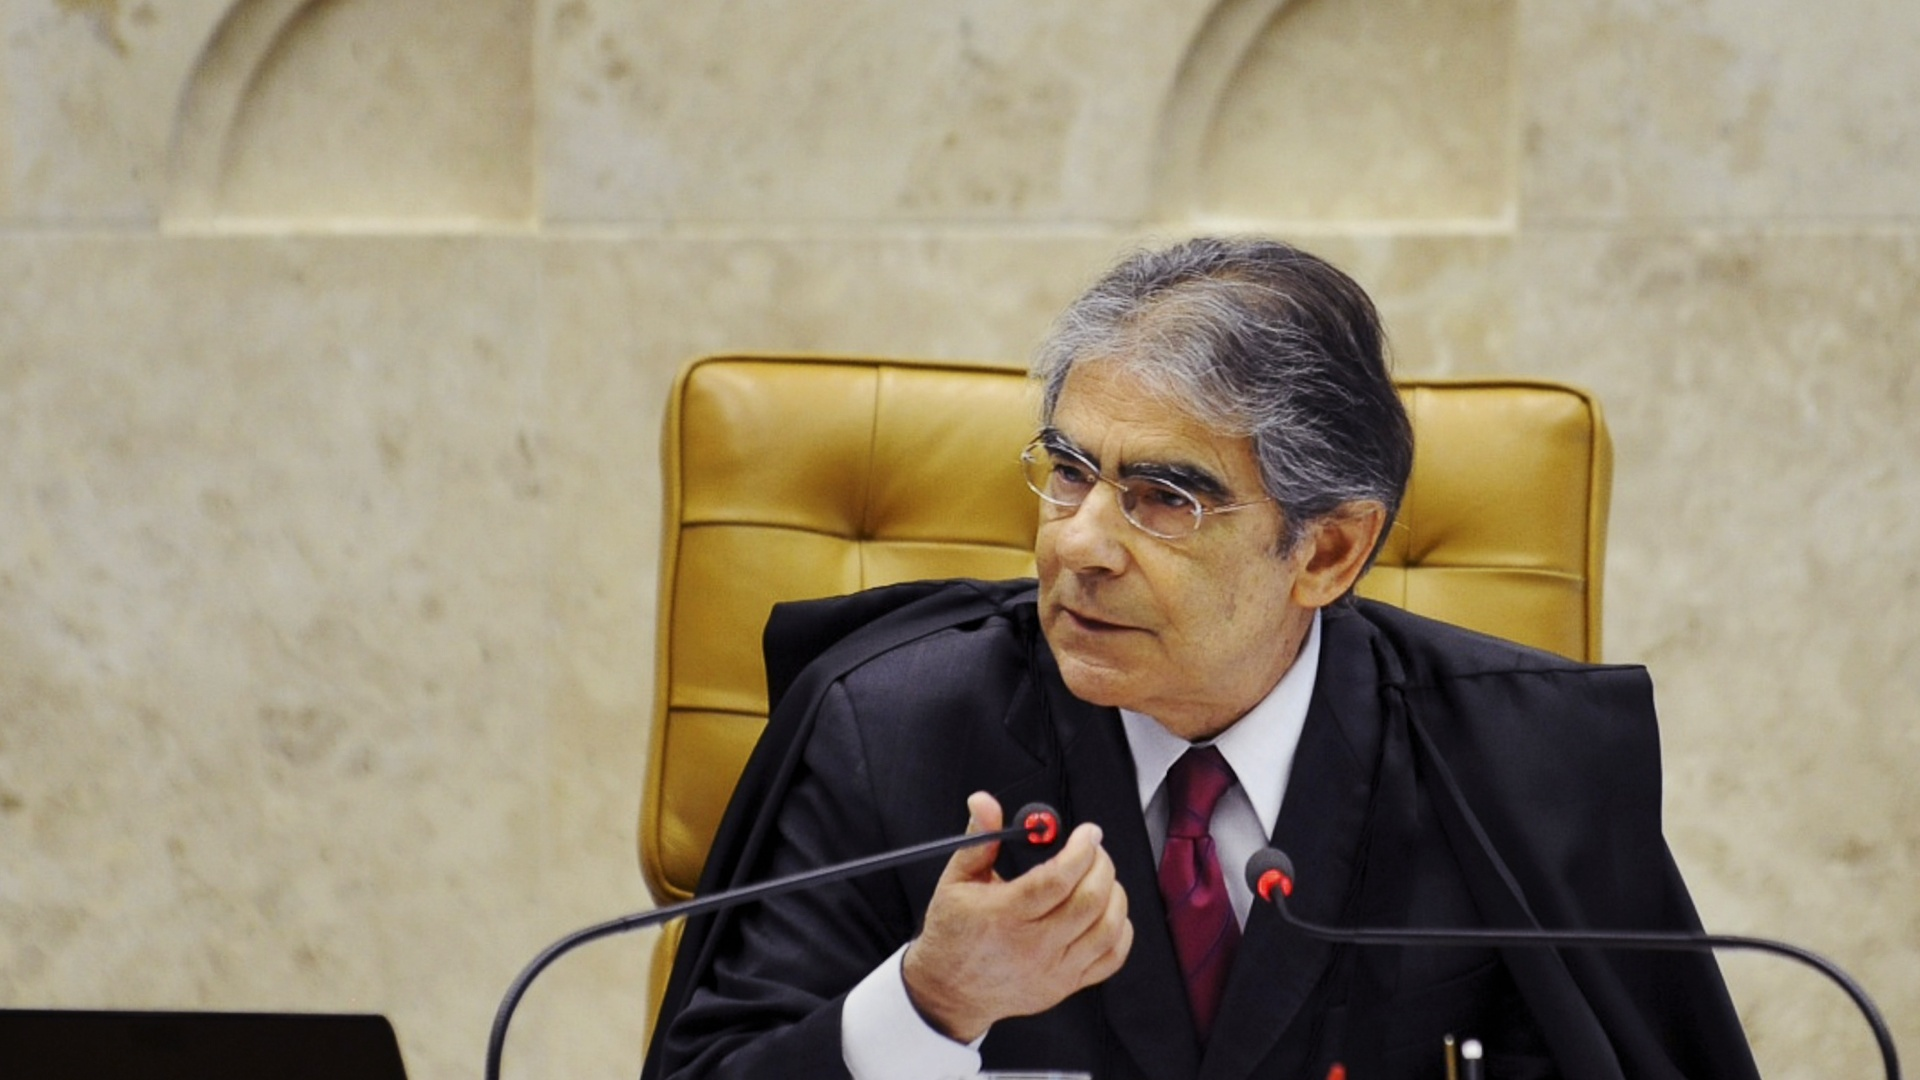 9.out.2012 - Presidente do Supremo Tribunal Federal (STF), ministro Carlos Ayres Britto, durante sesso de julgamento do processo do mensalo 